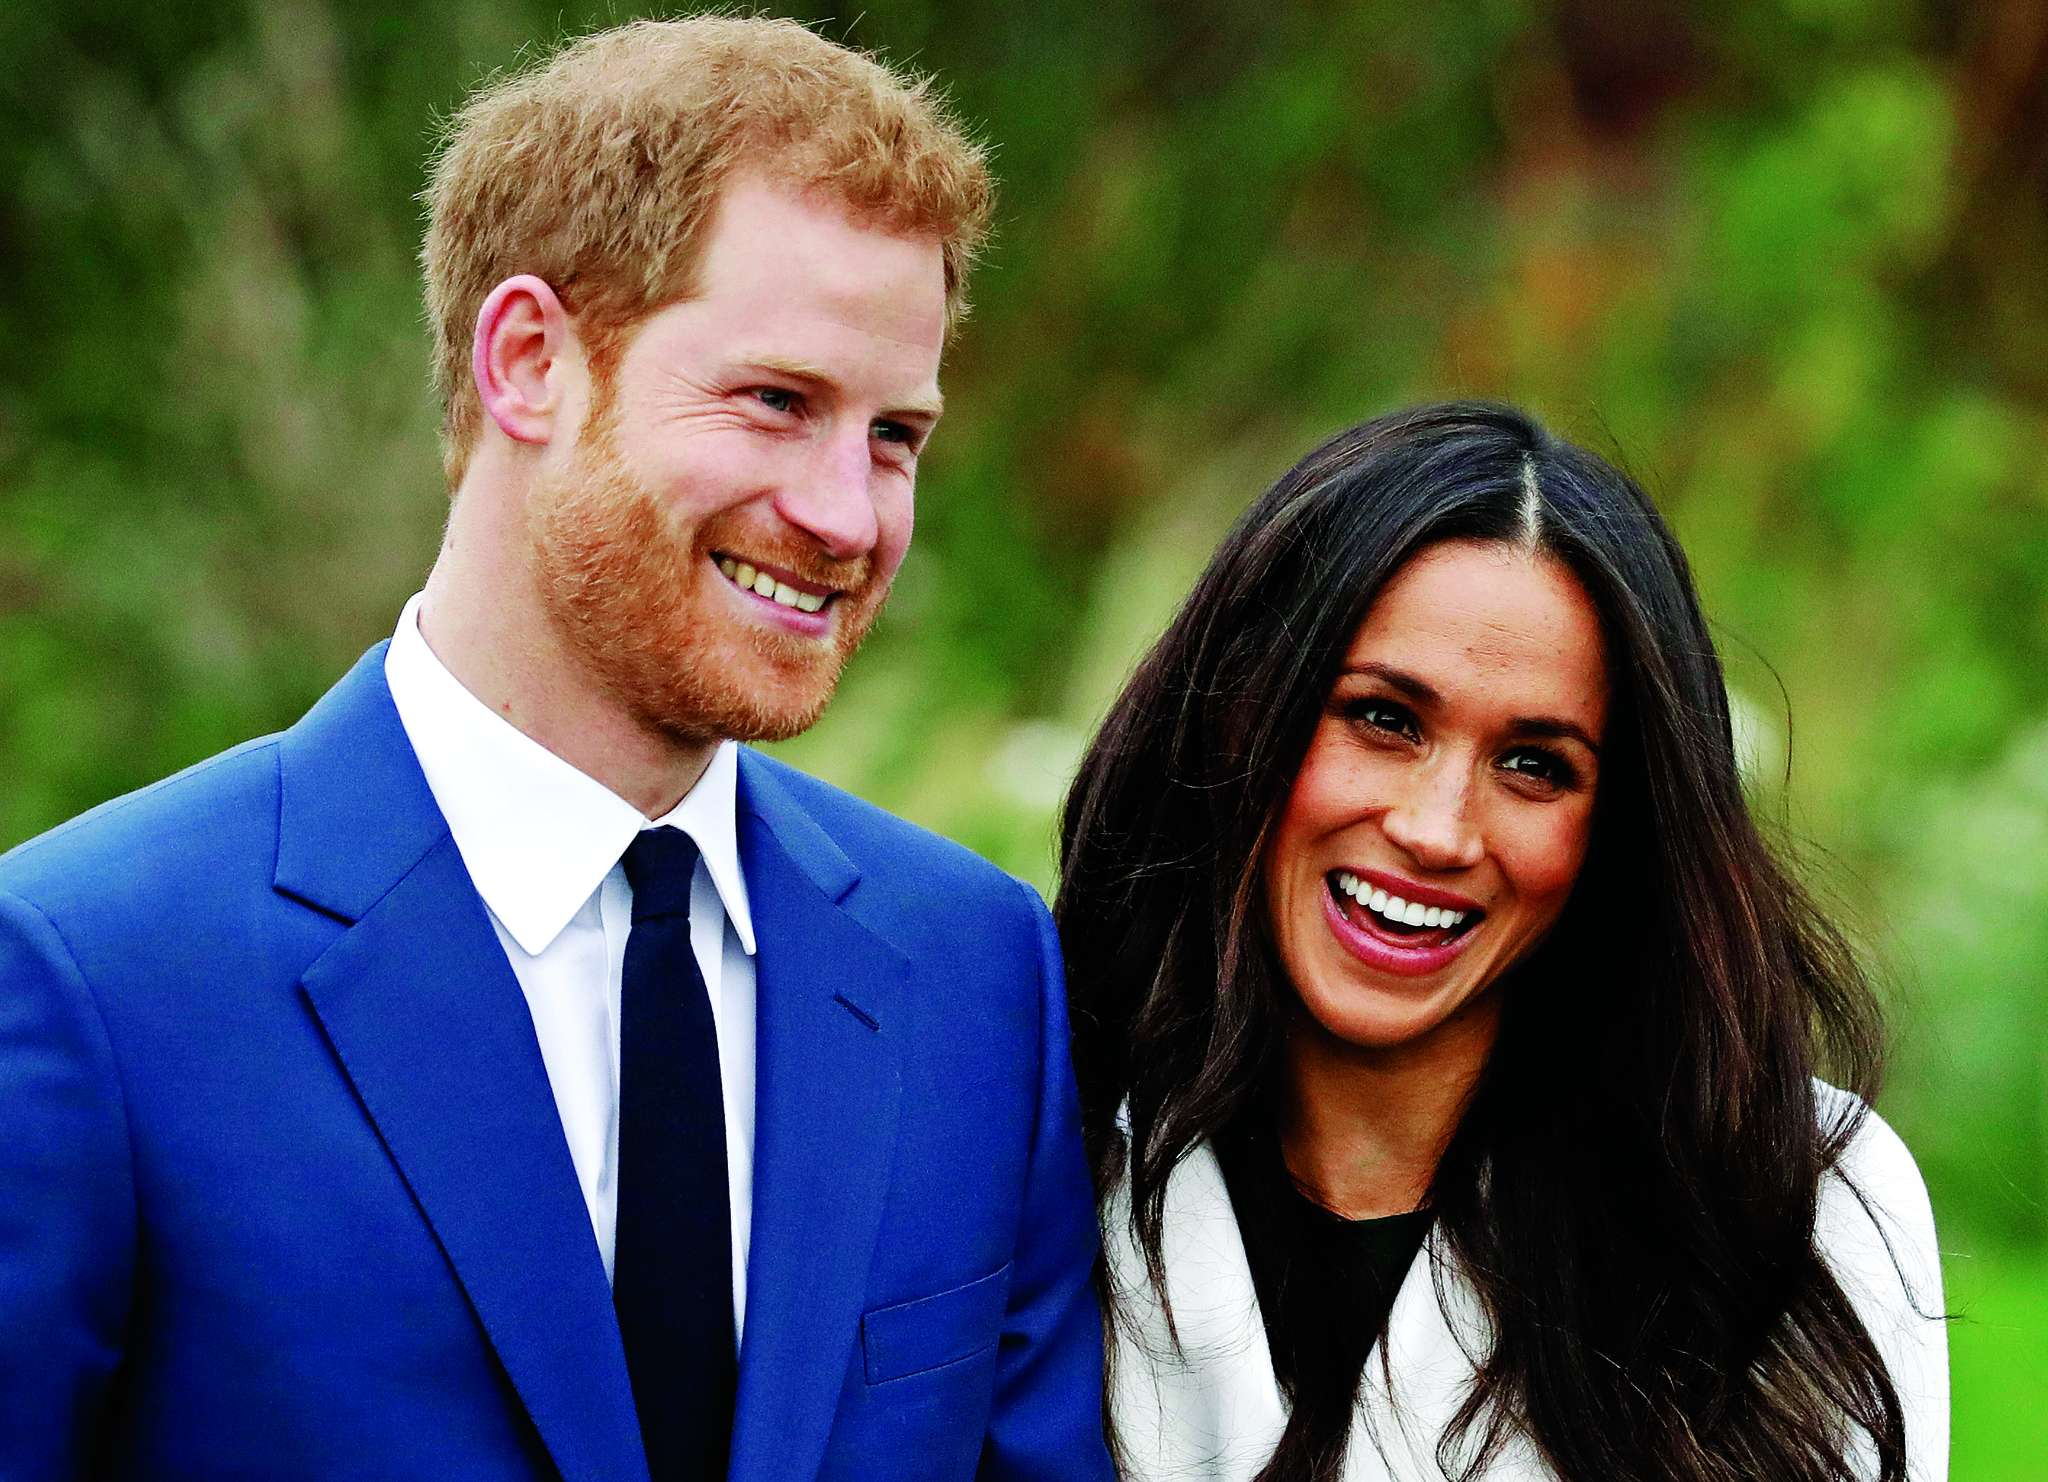 Britain´s Prince Harry and his fiancée, Meghan Markle , at Kensington Palace in London on Monday. The couple announced they will marry in the spring.